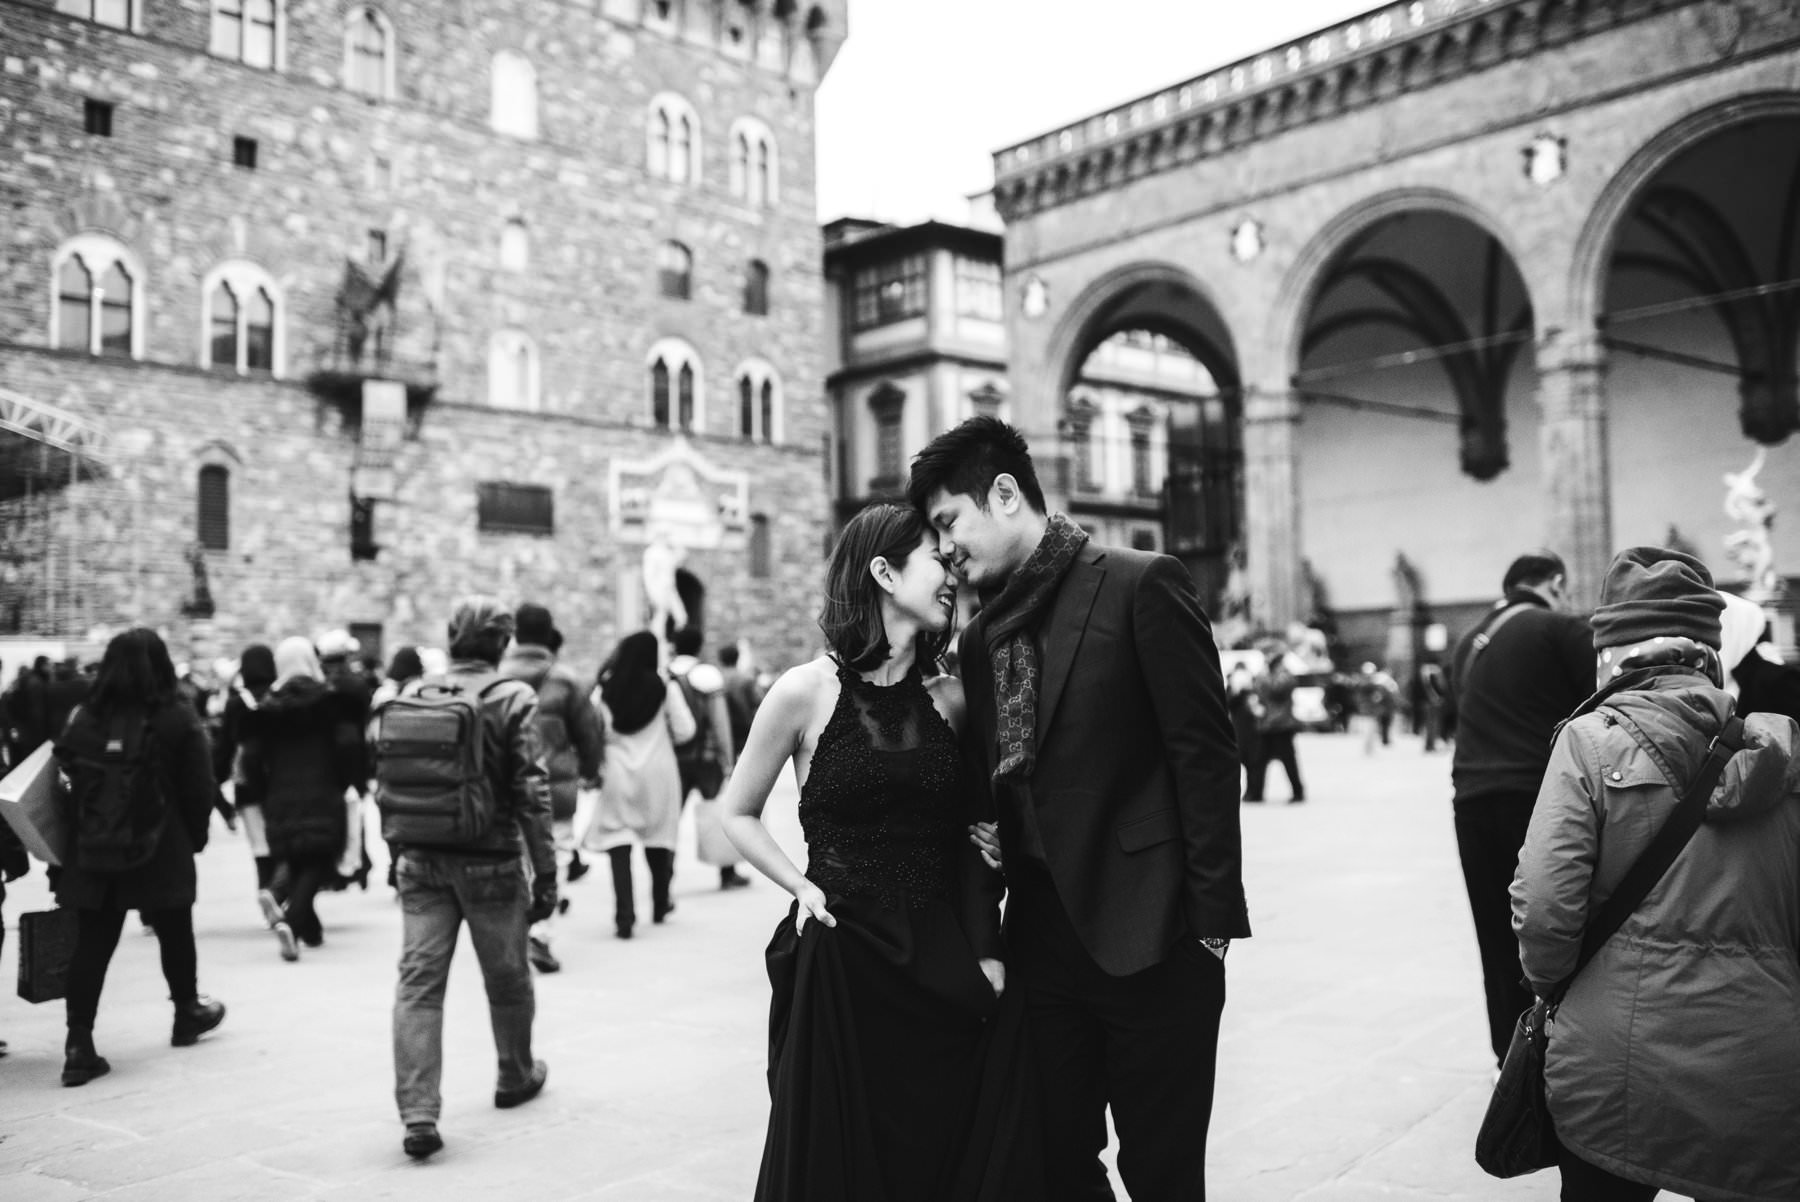 We're building some great memories in this couple photo shoot in Piazza della Signoria near Loggia dei Lanzi and Palazzo Vecchio in Florence. Photo by engagement photographer in Tuscany Gabriele Fani.